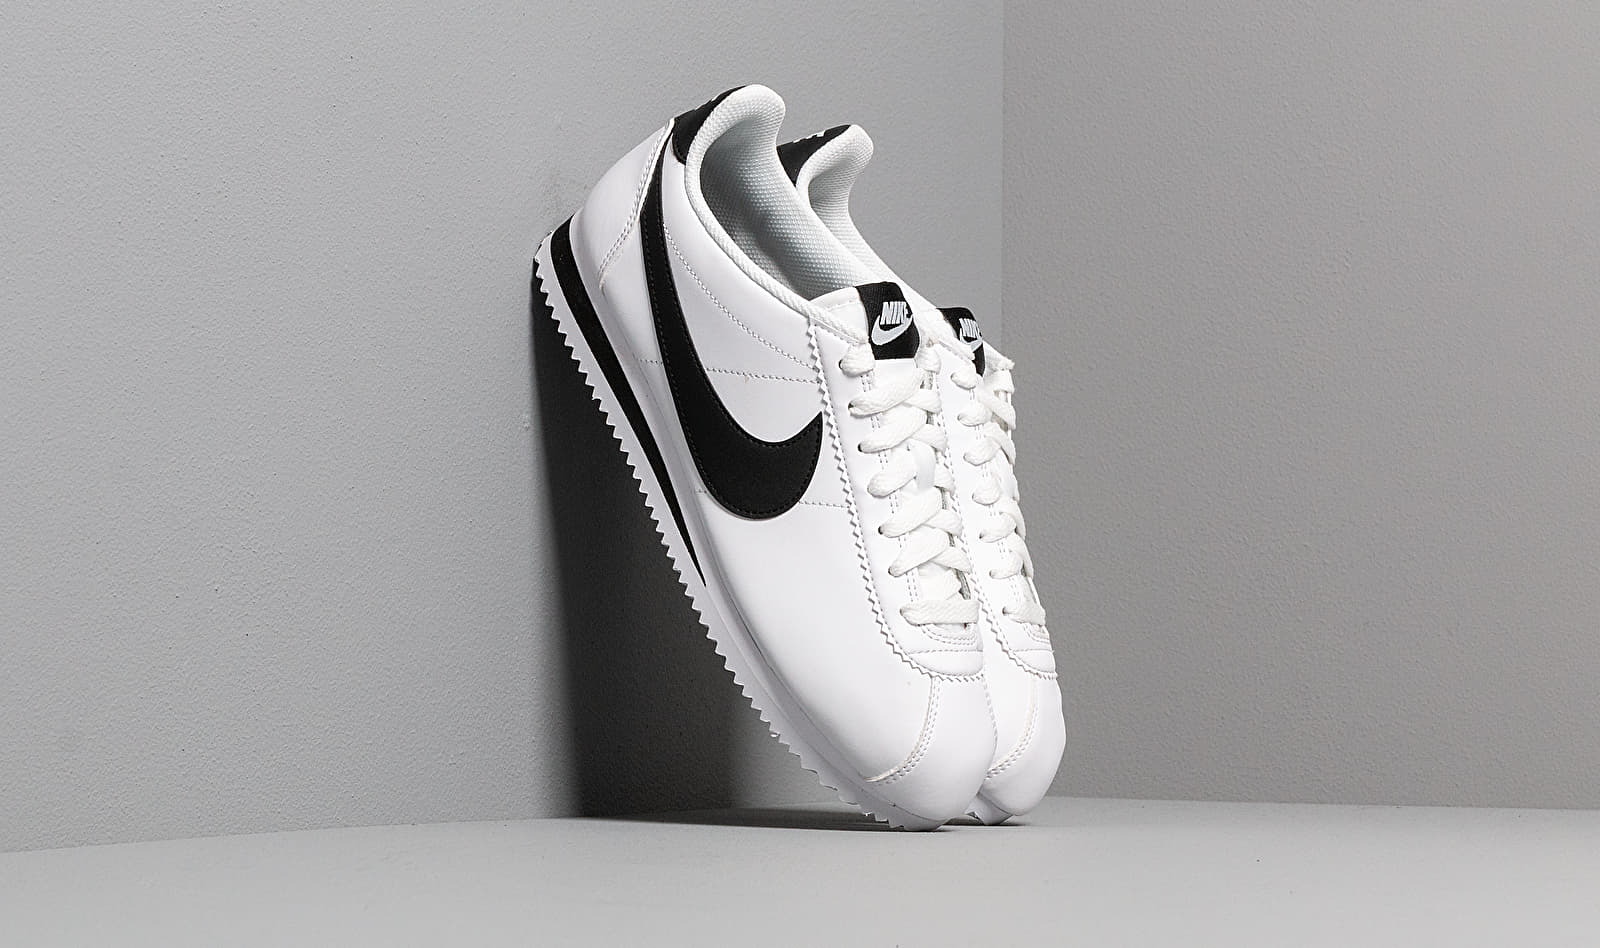 Nike Wmns Classic Cortez Leather White/ Black-White EUR 40.5